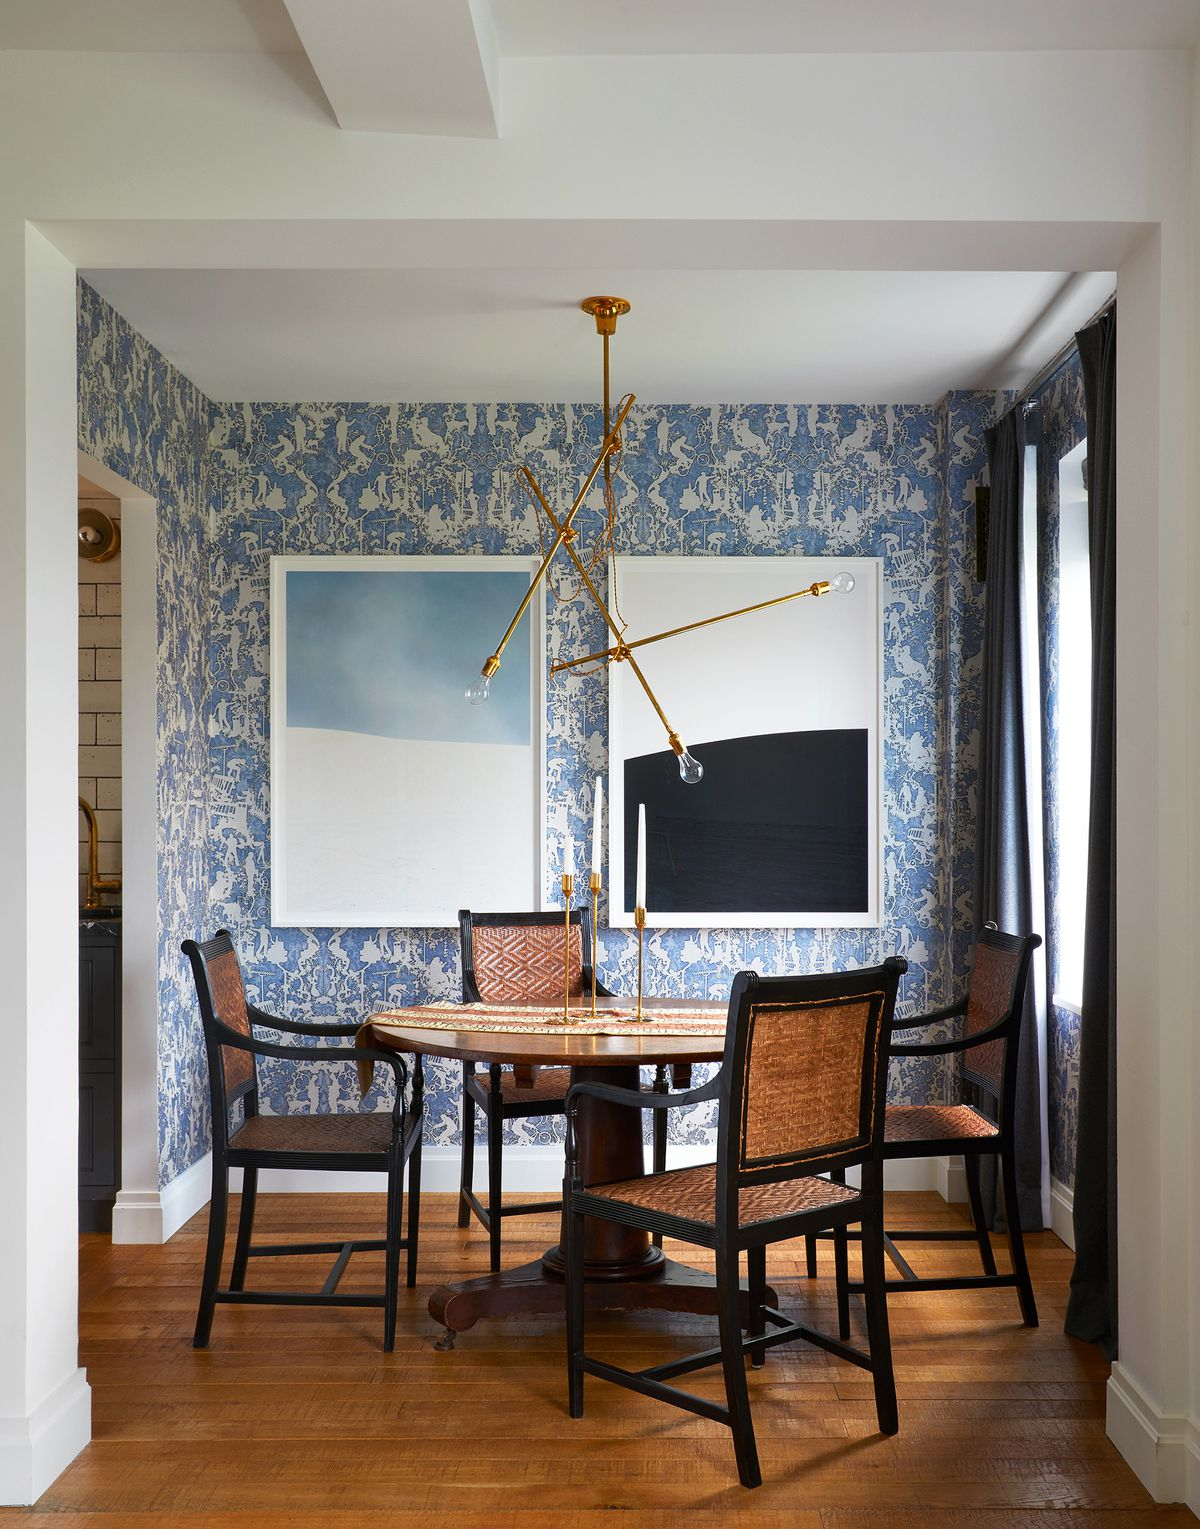 The modern blue-and-white wallpaper and brass chandelier are juxtaposed with an antique dining table and chairs from the 1840s.